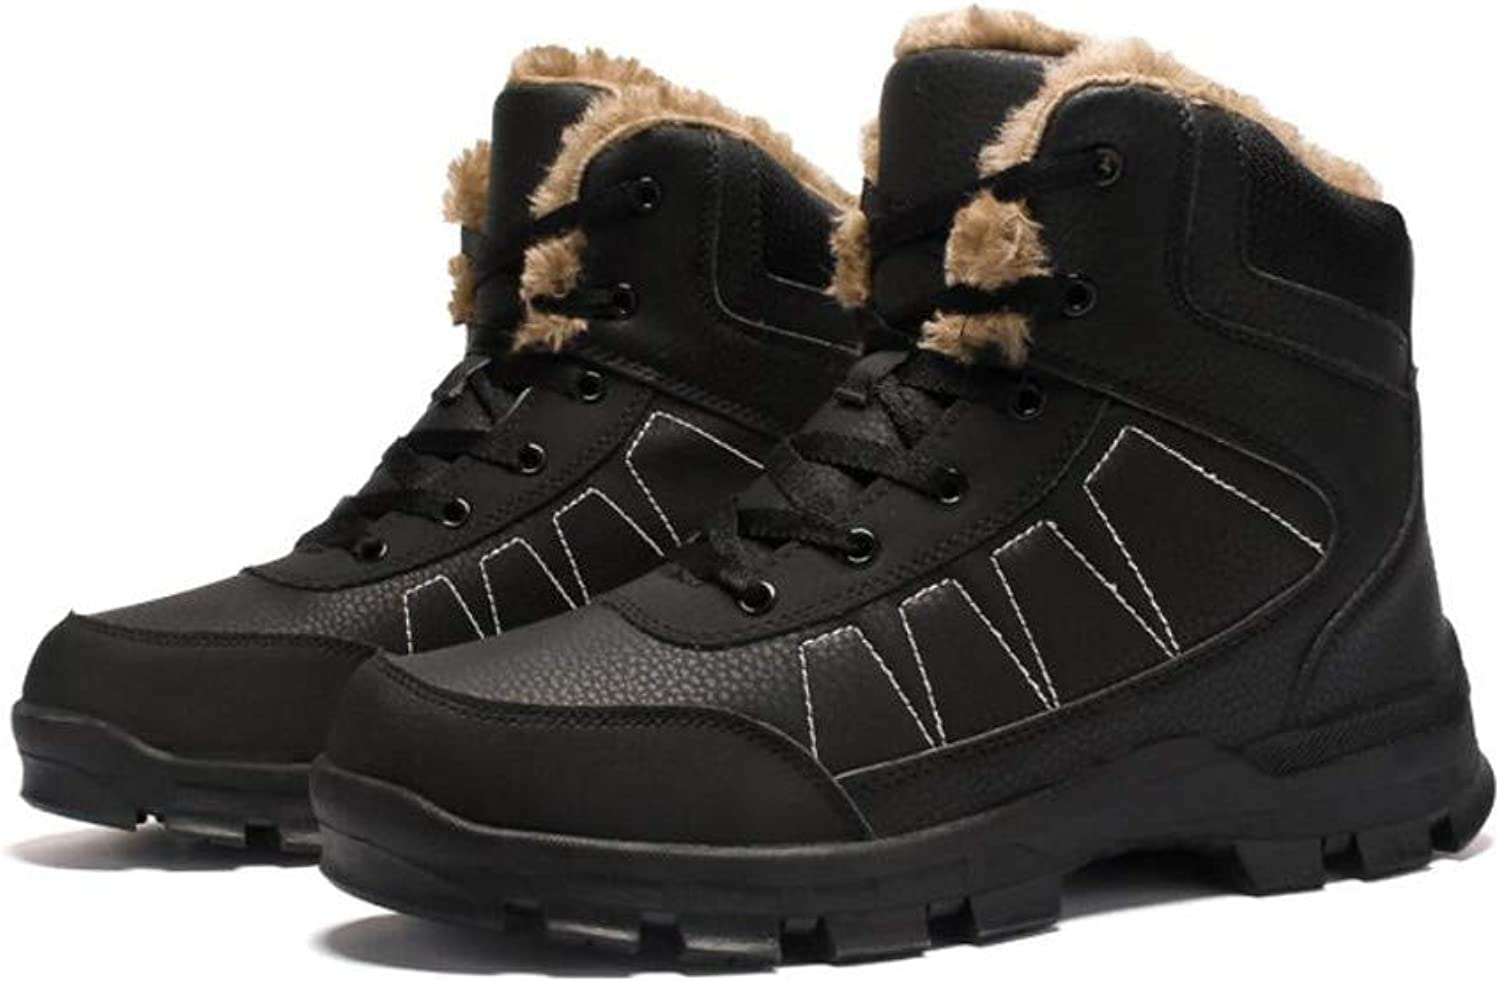 Snow Sneakers Mid Top shoes Men Winter Waterproof Hiking Boots Lace-up Booties Climbing Outdoor